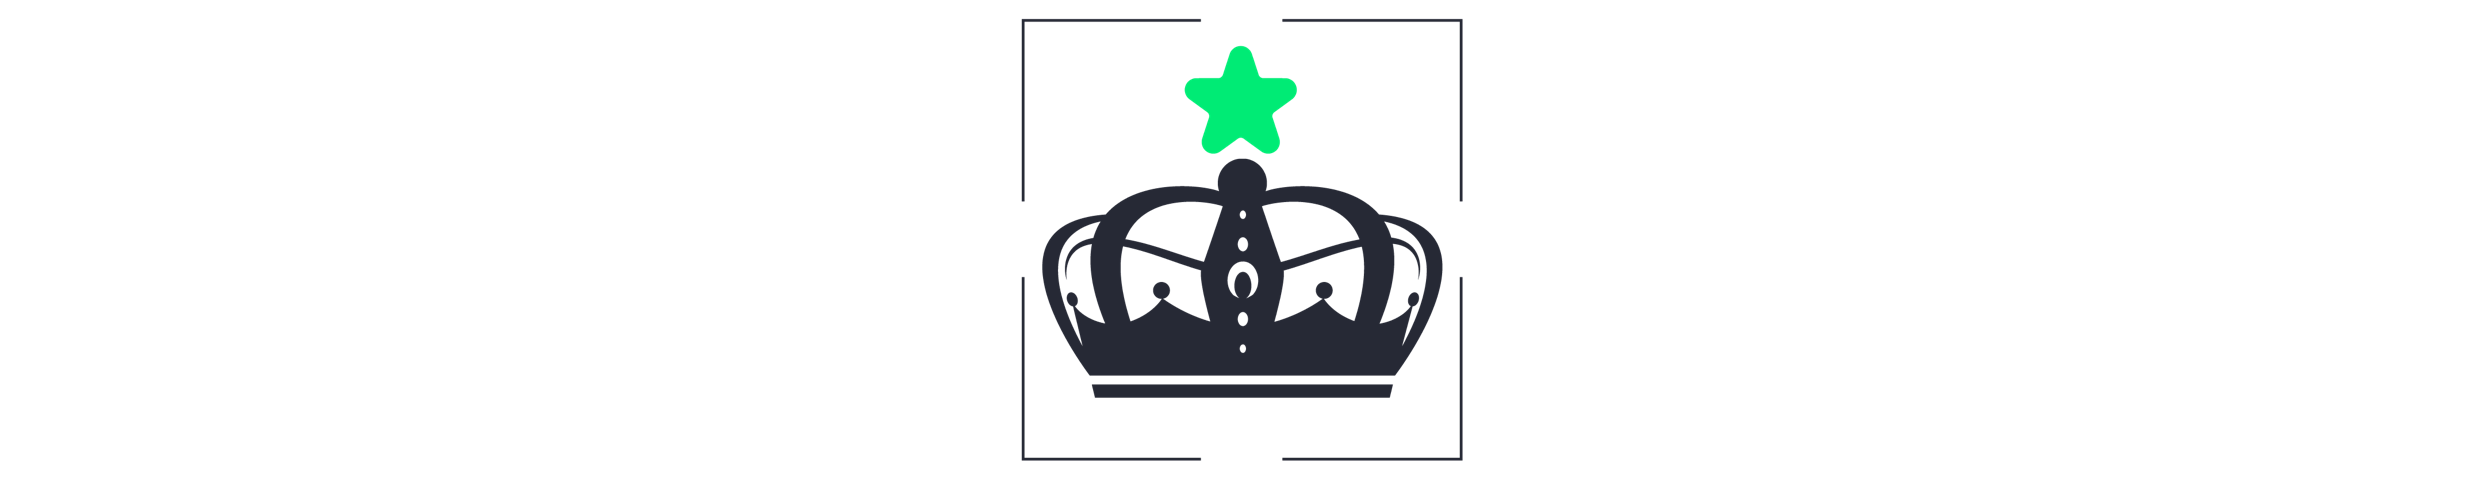 crown social icon23.png